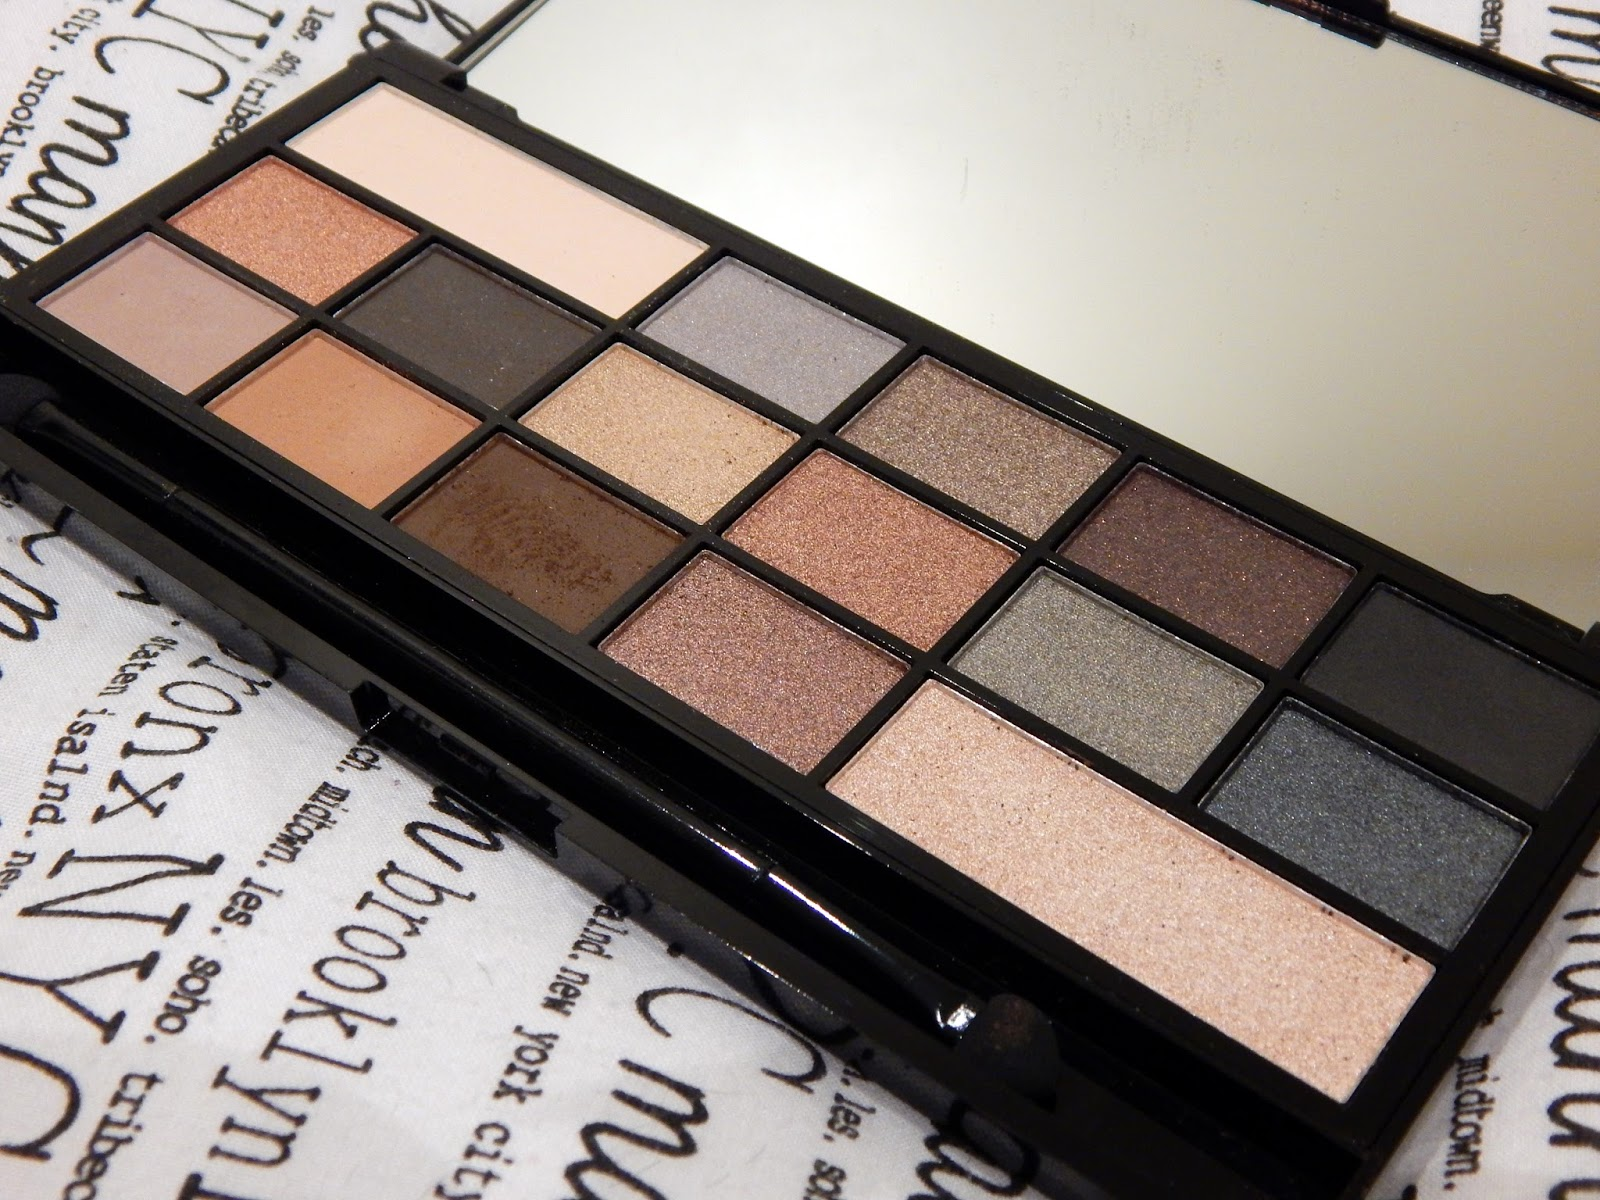 I Heart Makeup Naked Underneath - Faux Fur covered palette £7.99